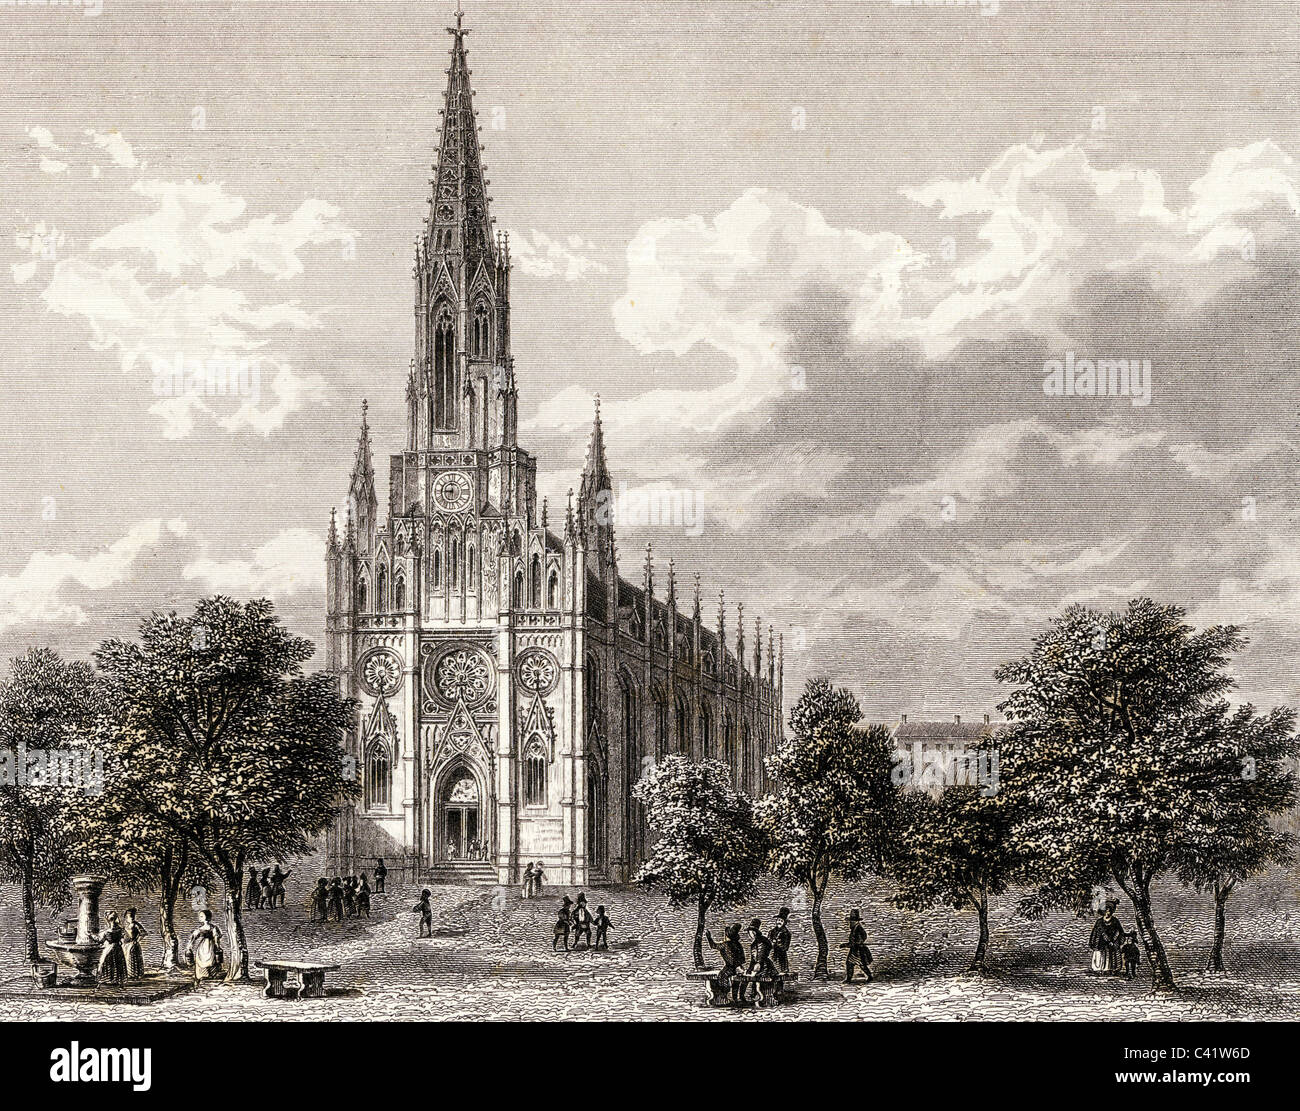 geography / travel, Germany, Munich, Mariahilf Church, built built 1831 - 1839, architects: Joseph Daniel Ohlmueller - Stock Image